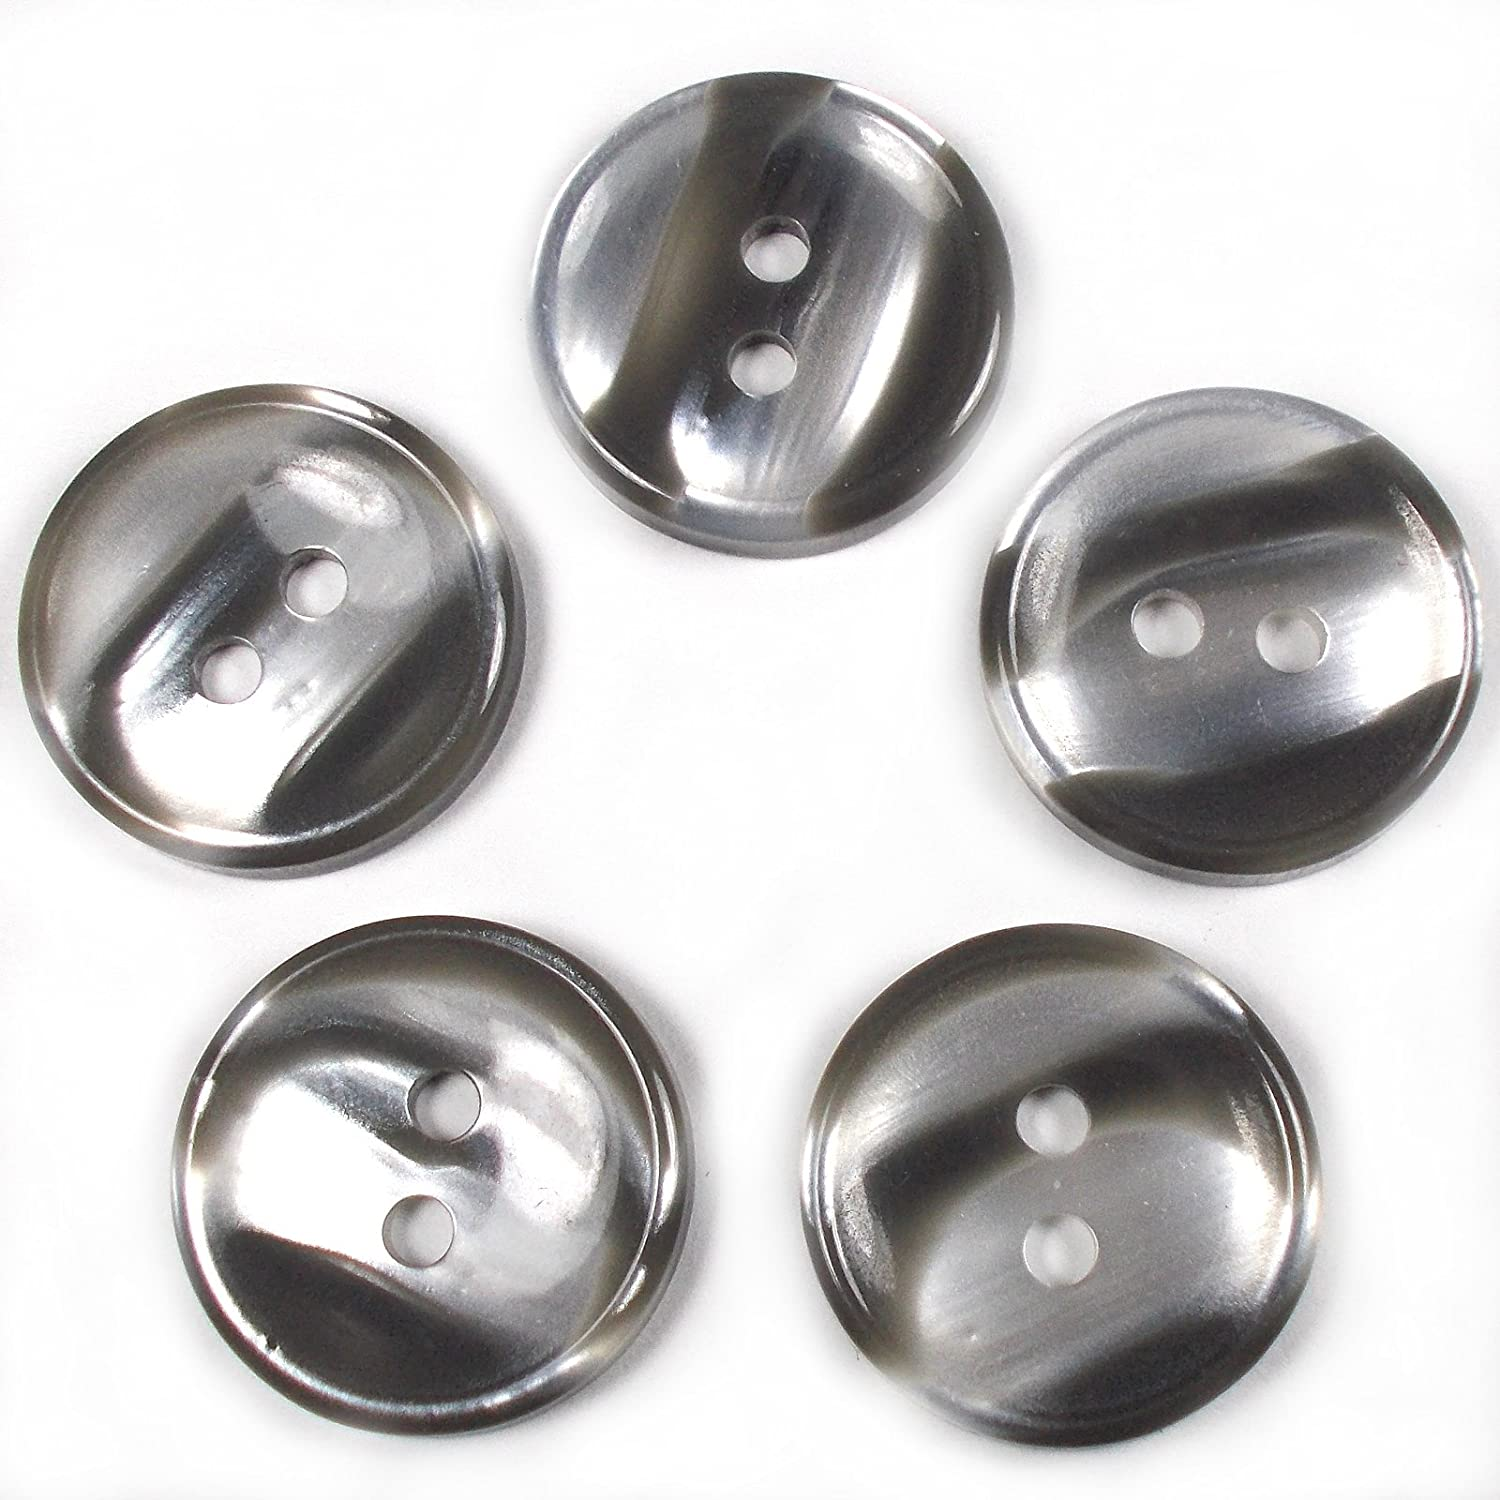 13mm, Brown Marble Stripe Humbug Candy Look Round Buttons Pack of 5